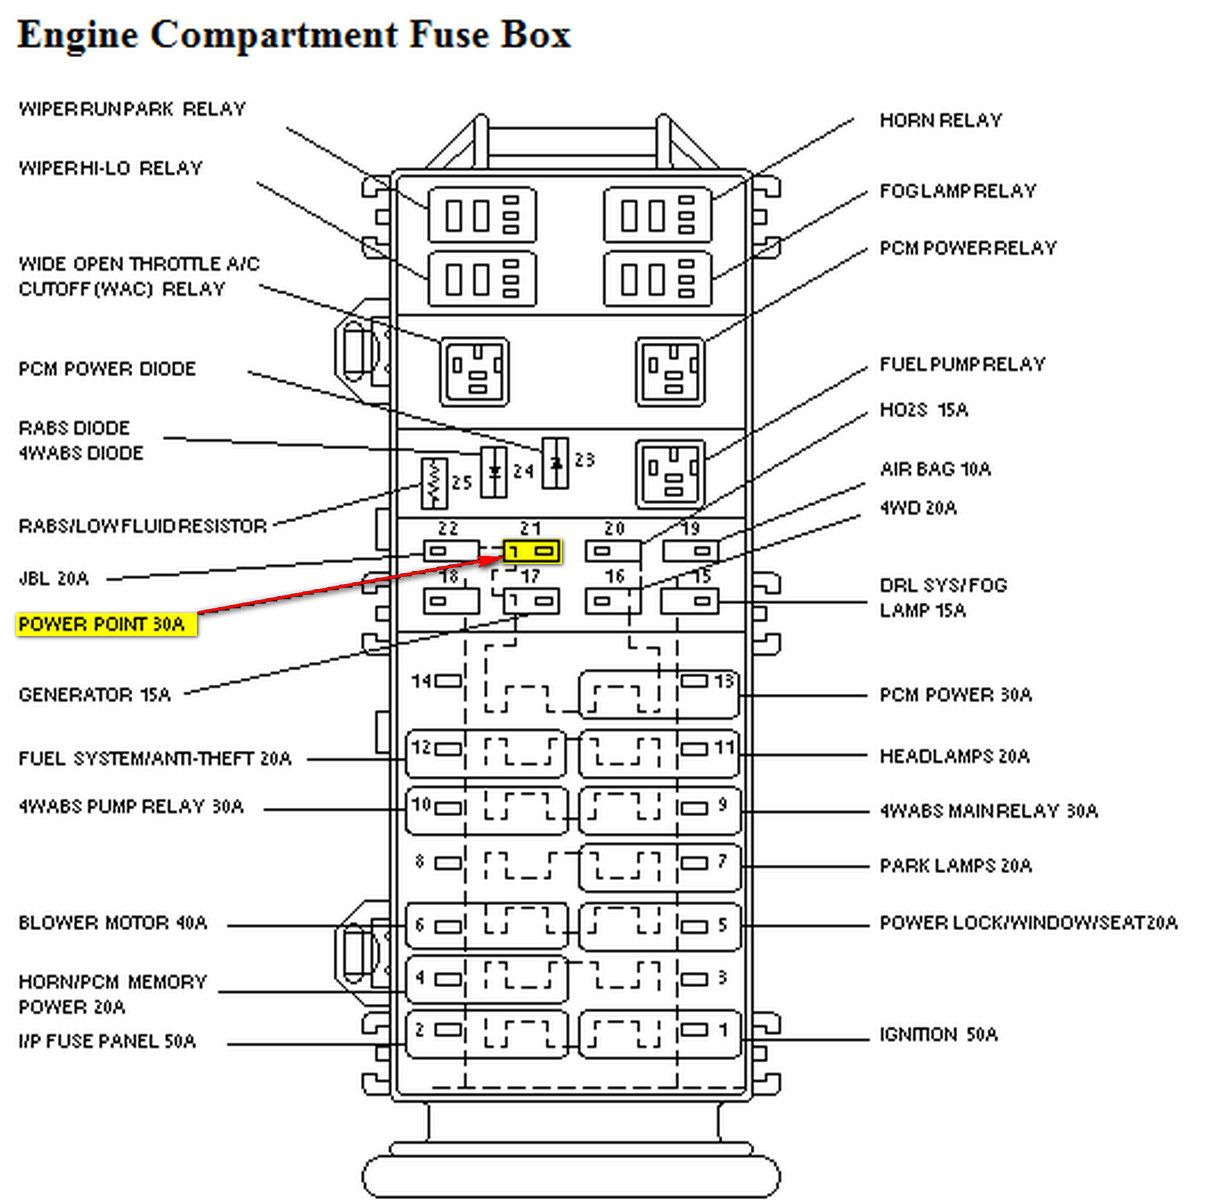 Ford Ranger Fuse Box Diagram Truck Part Diagrams